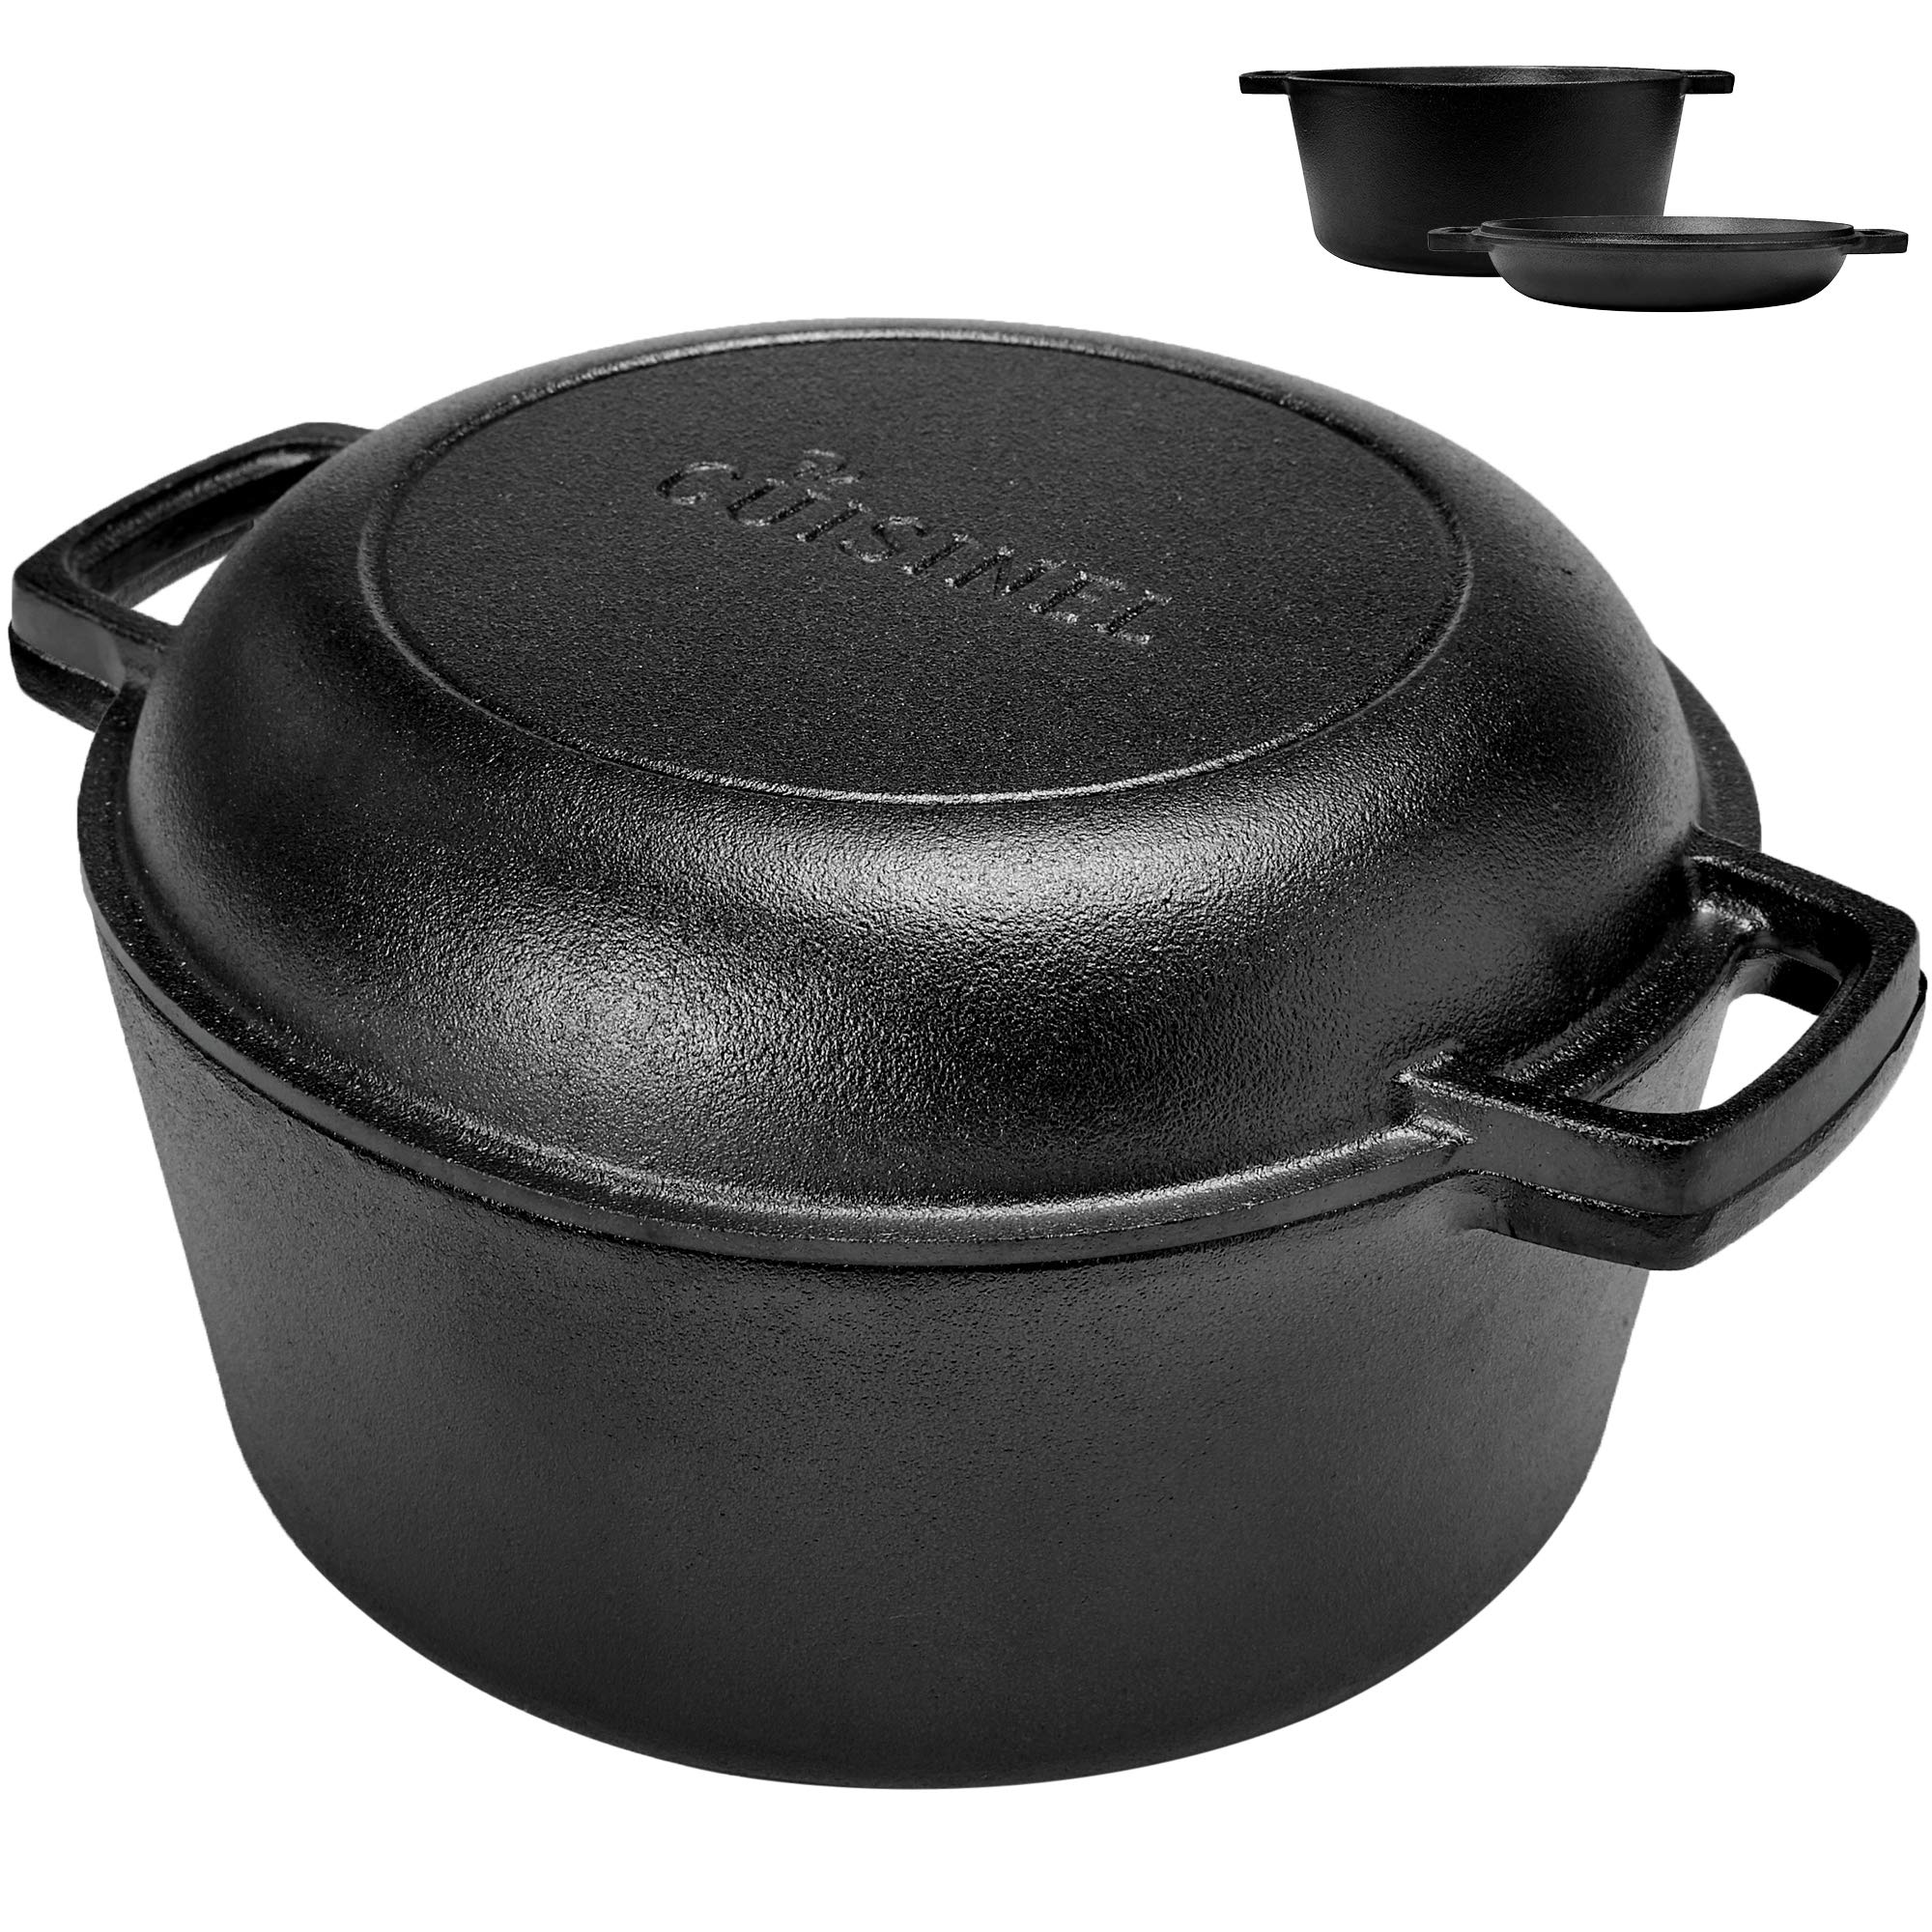 Cuisinel Pre Seasoned Cast Iron Skillet and Double Dutch Oven Set – 2 in 1 Cooker: 5 Quart Deep Pan, 10'' Frying Pan Converts to Lid for Dutch Oven – Grill, Stove Top and Induction Safe